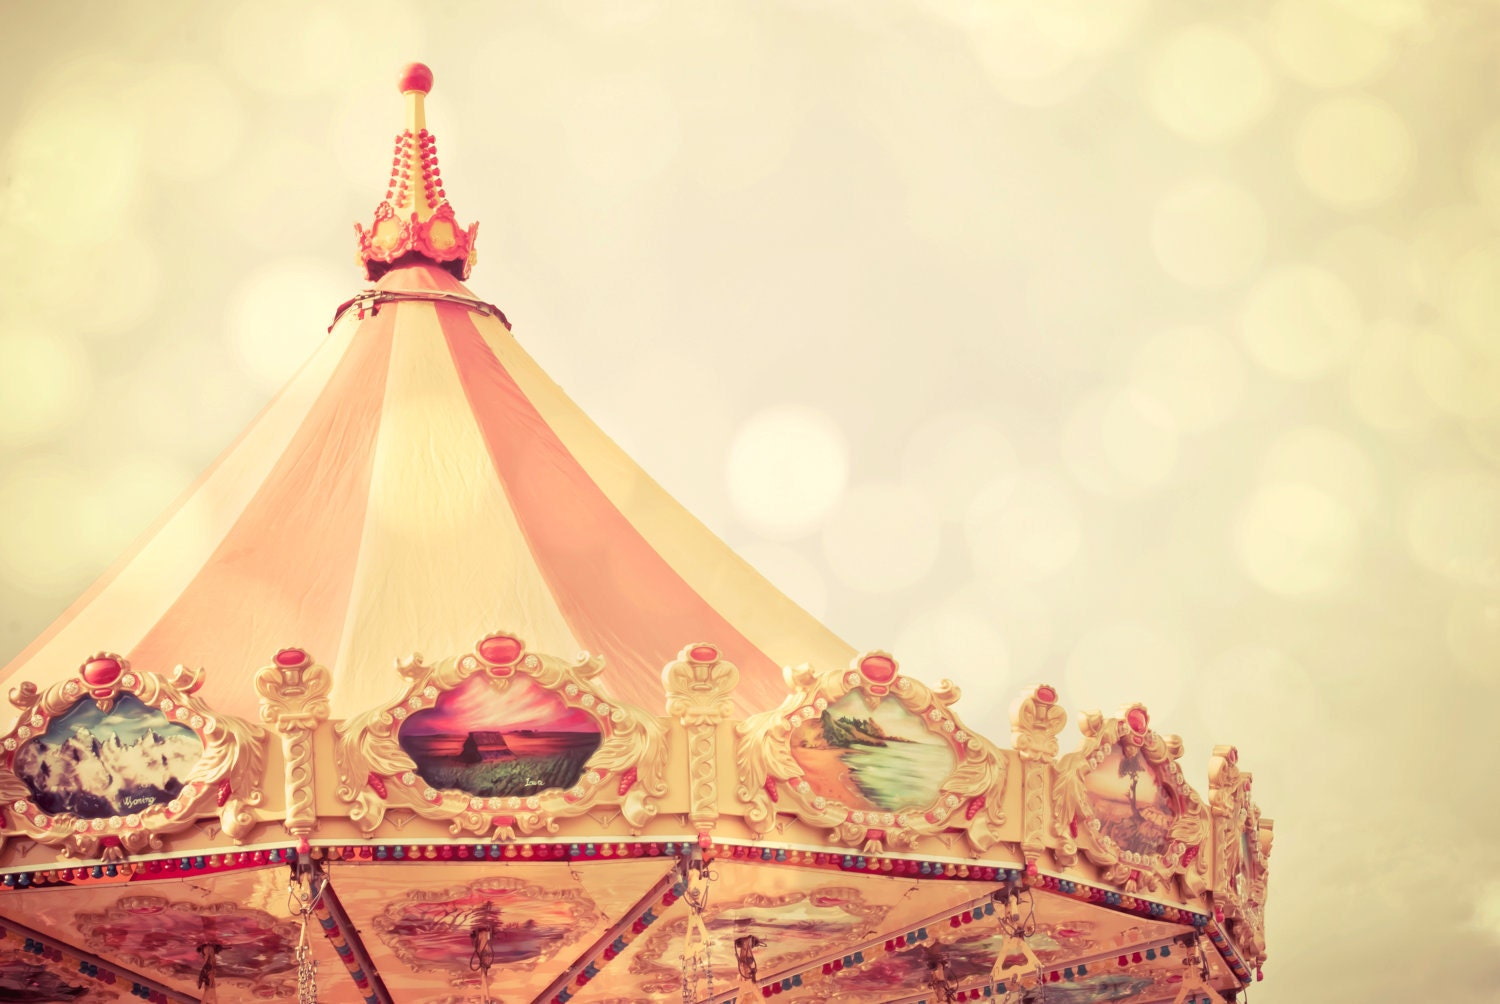 Carnival Carousel - 5 X 7 Photography Print - State Fair Family Fun Tent Sparkle